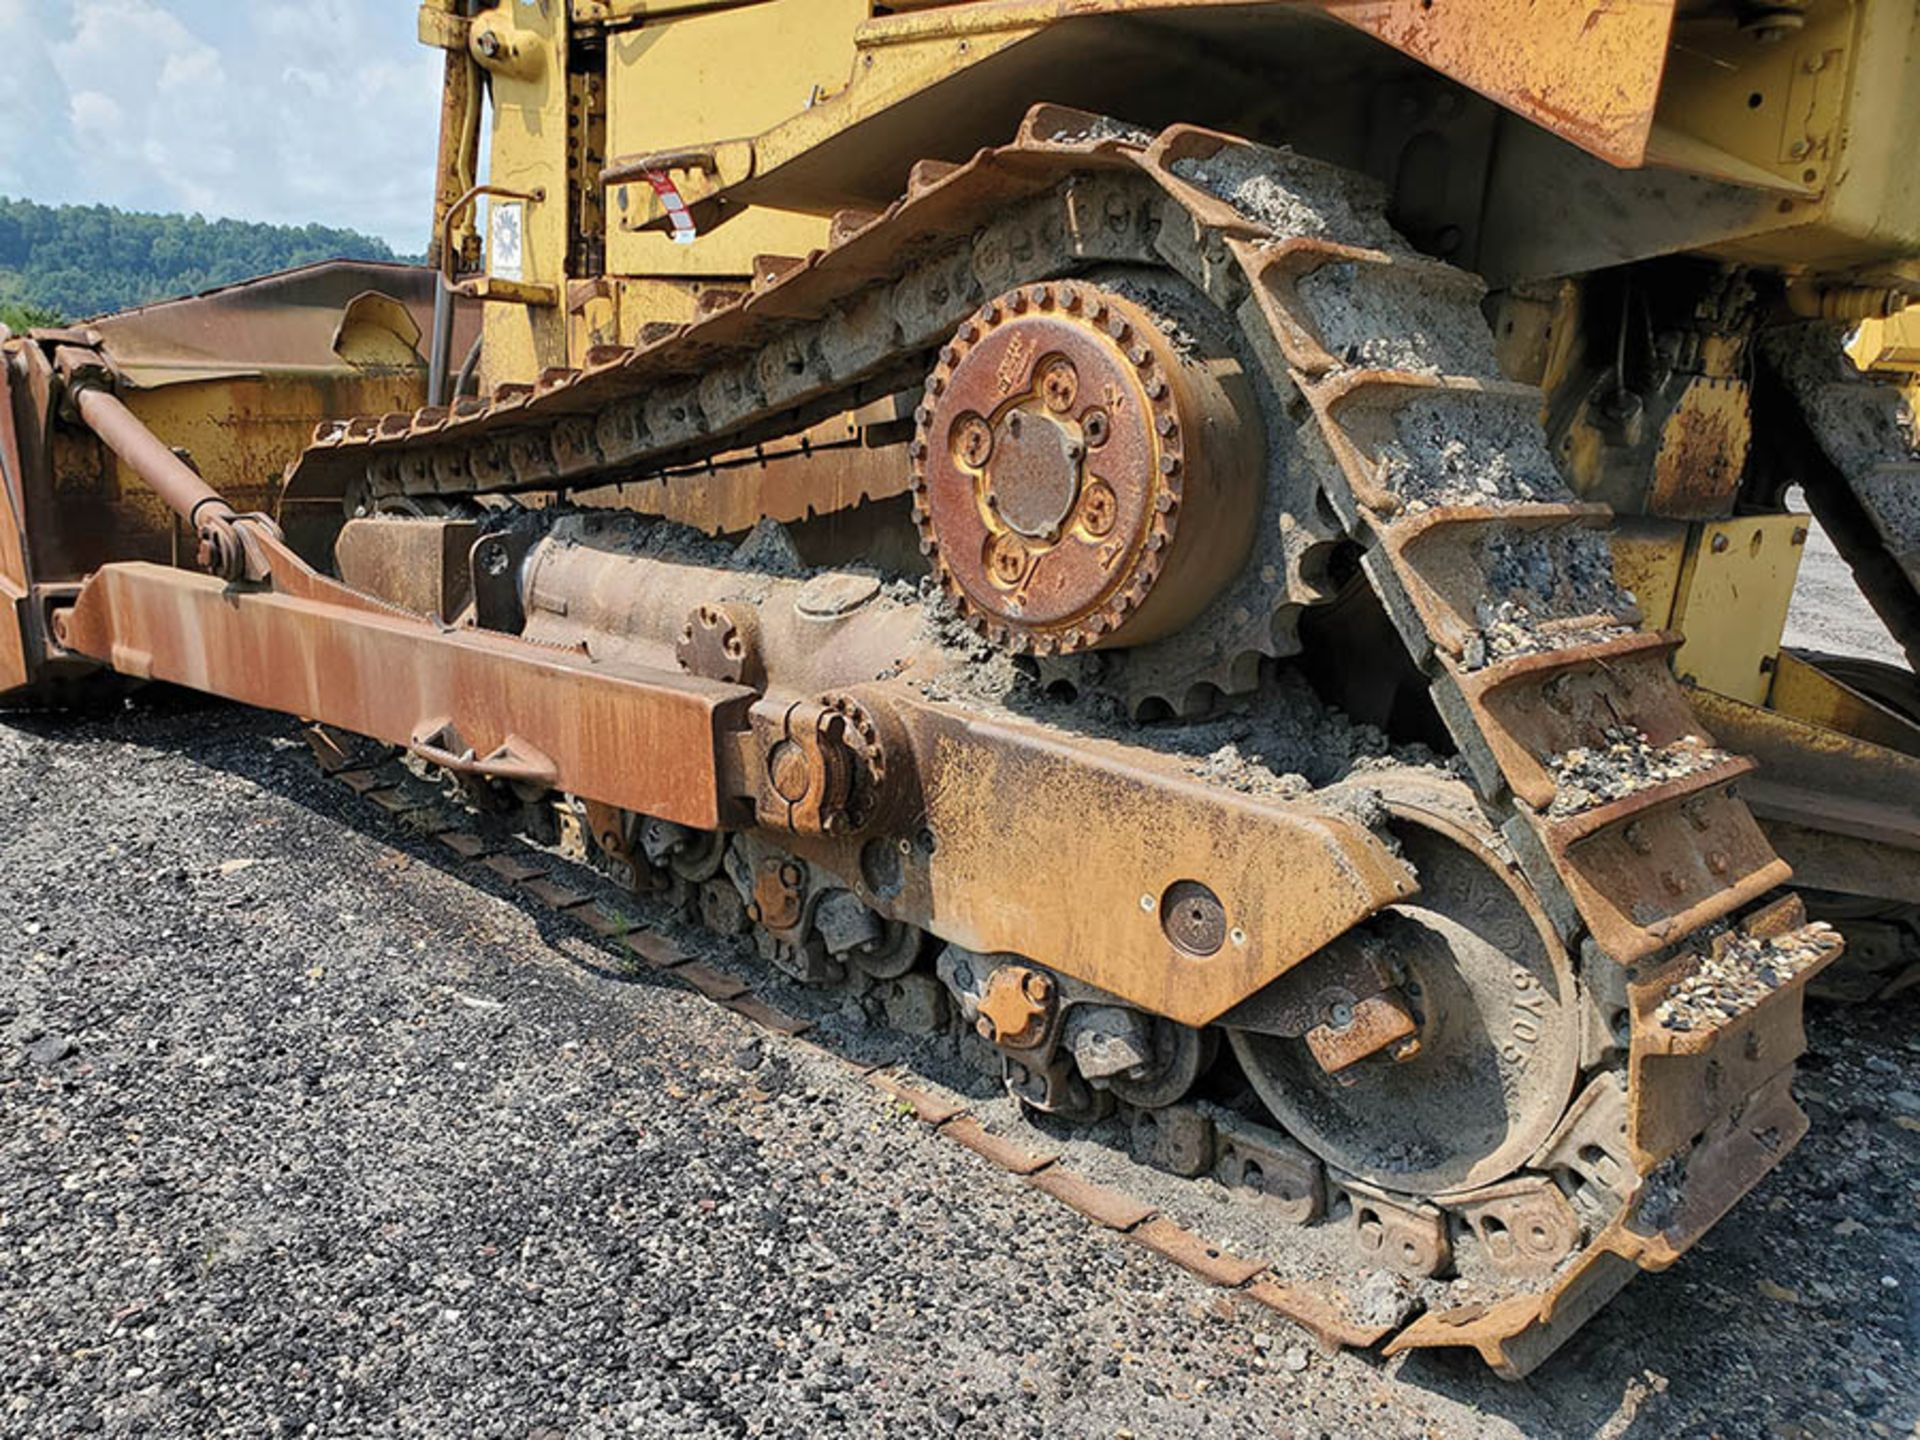 Lot 125 - CATERPILLAR D8N DOZER, 57,577 HOURS SHOWING, 24'' WIDE METAL TRACKS, 154'' WIDE 4-WAY DOZER BLADE,